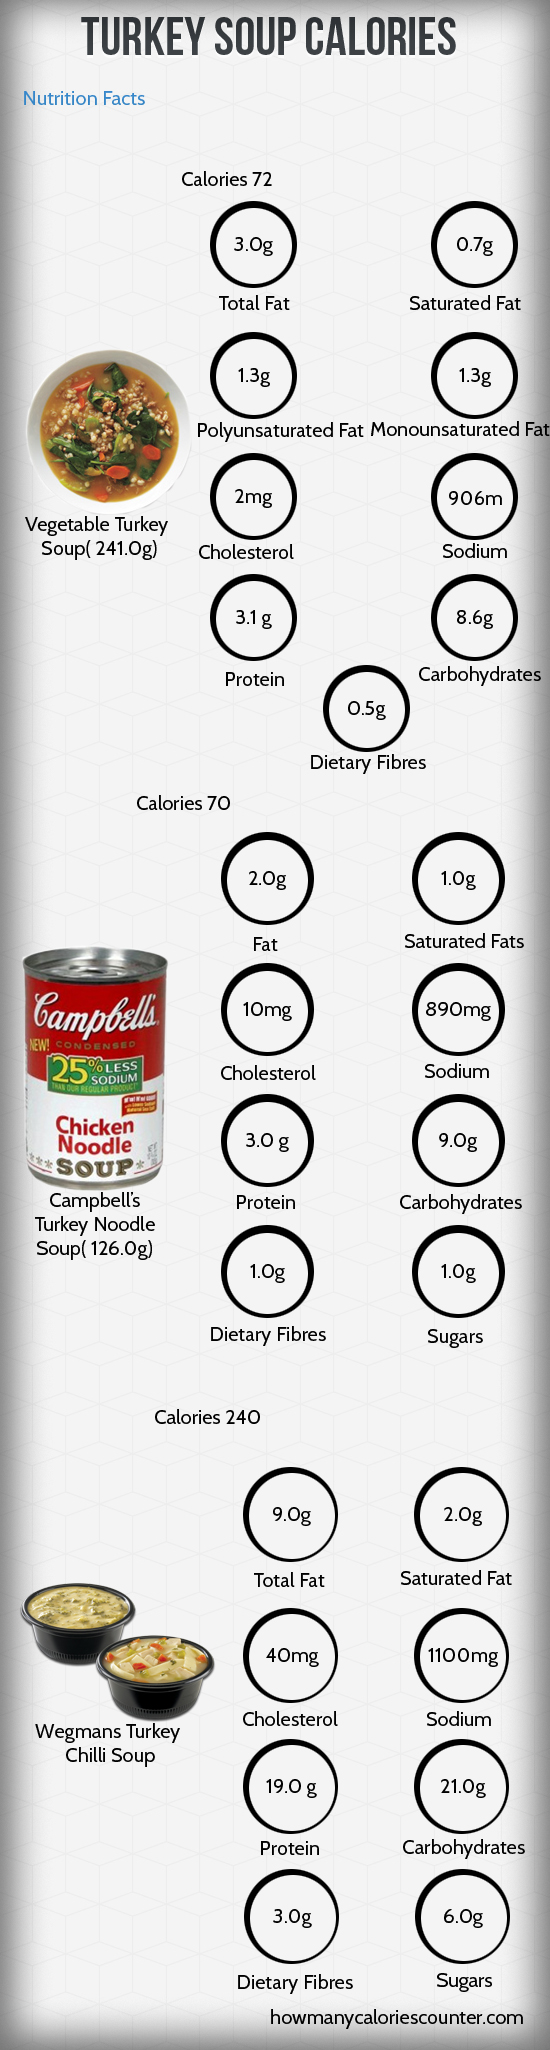 Calories in Turkey Soup